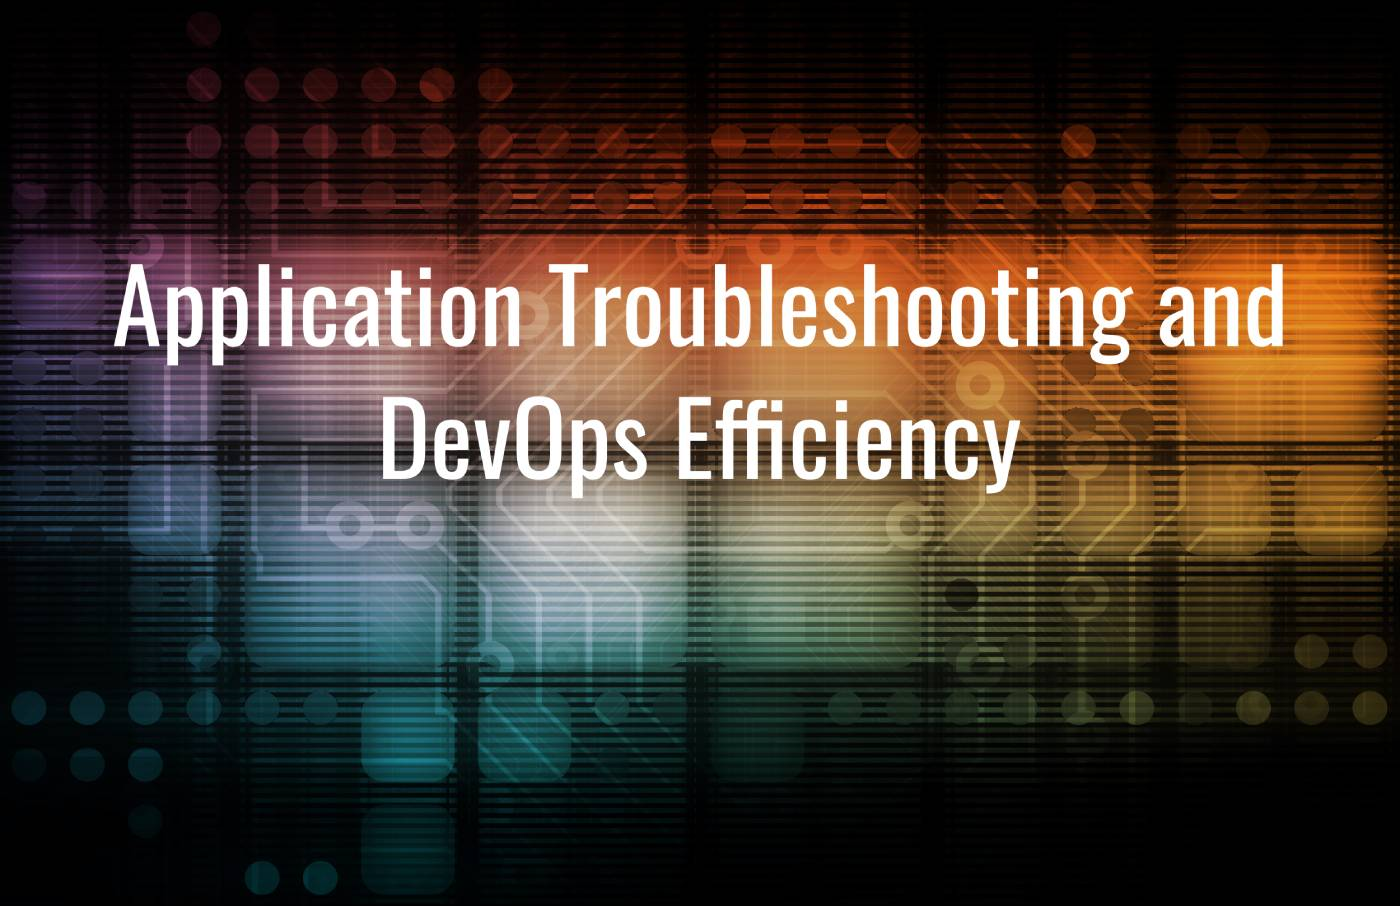 Application Troubleshooting and DevOps Efficiency